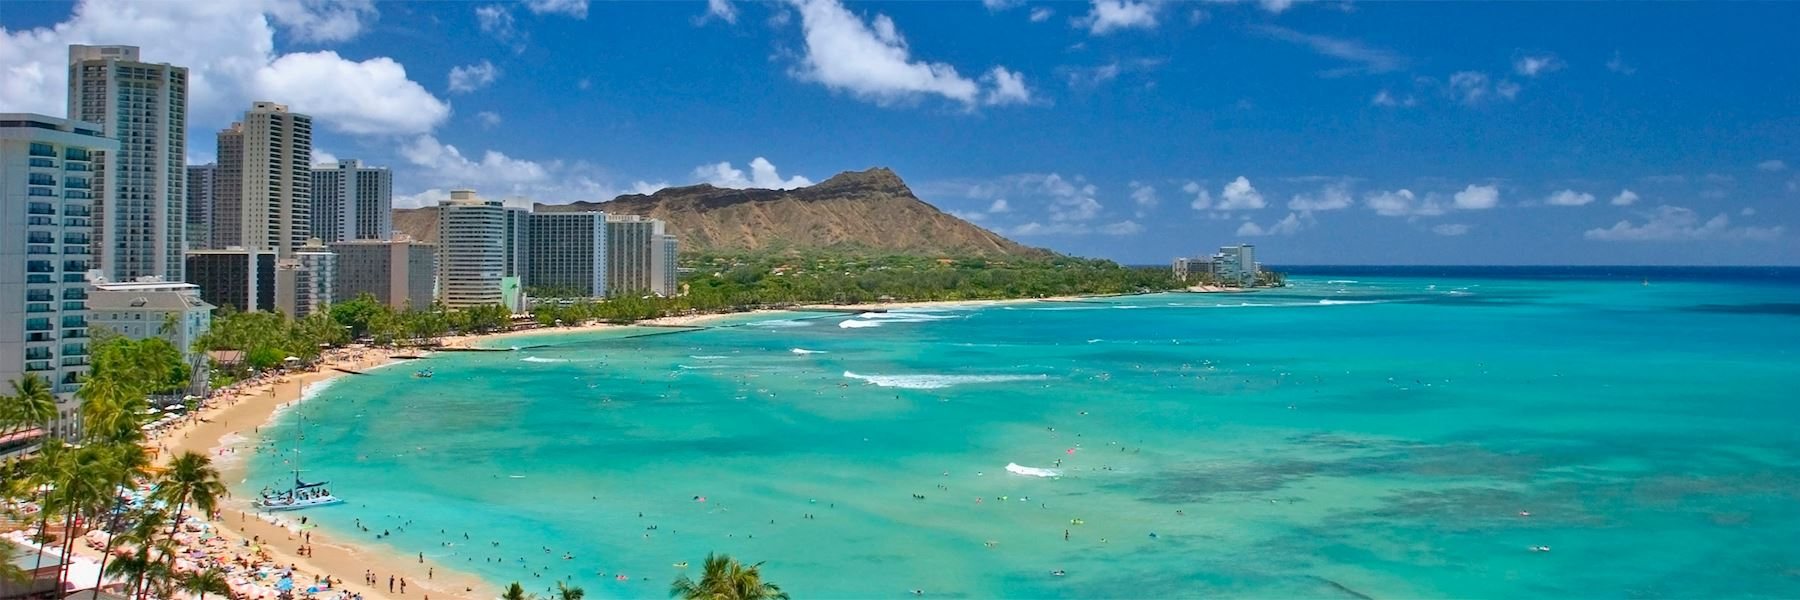 visit oahu on a trip to hawaii audley travel. Black Bedroom Furniture Sets. Home Design Ideas